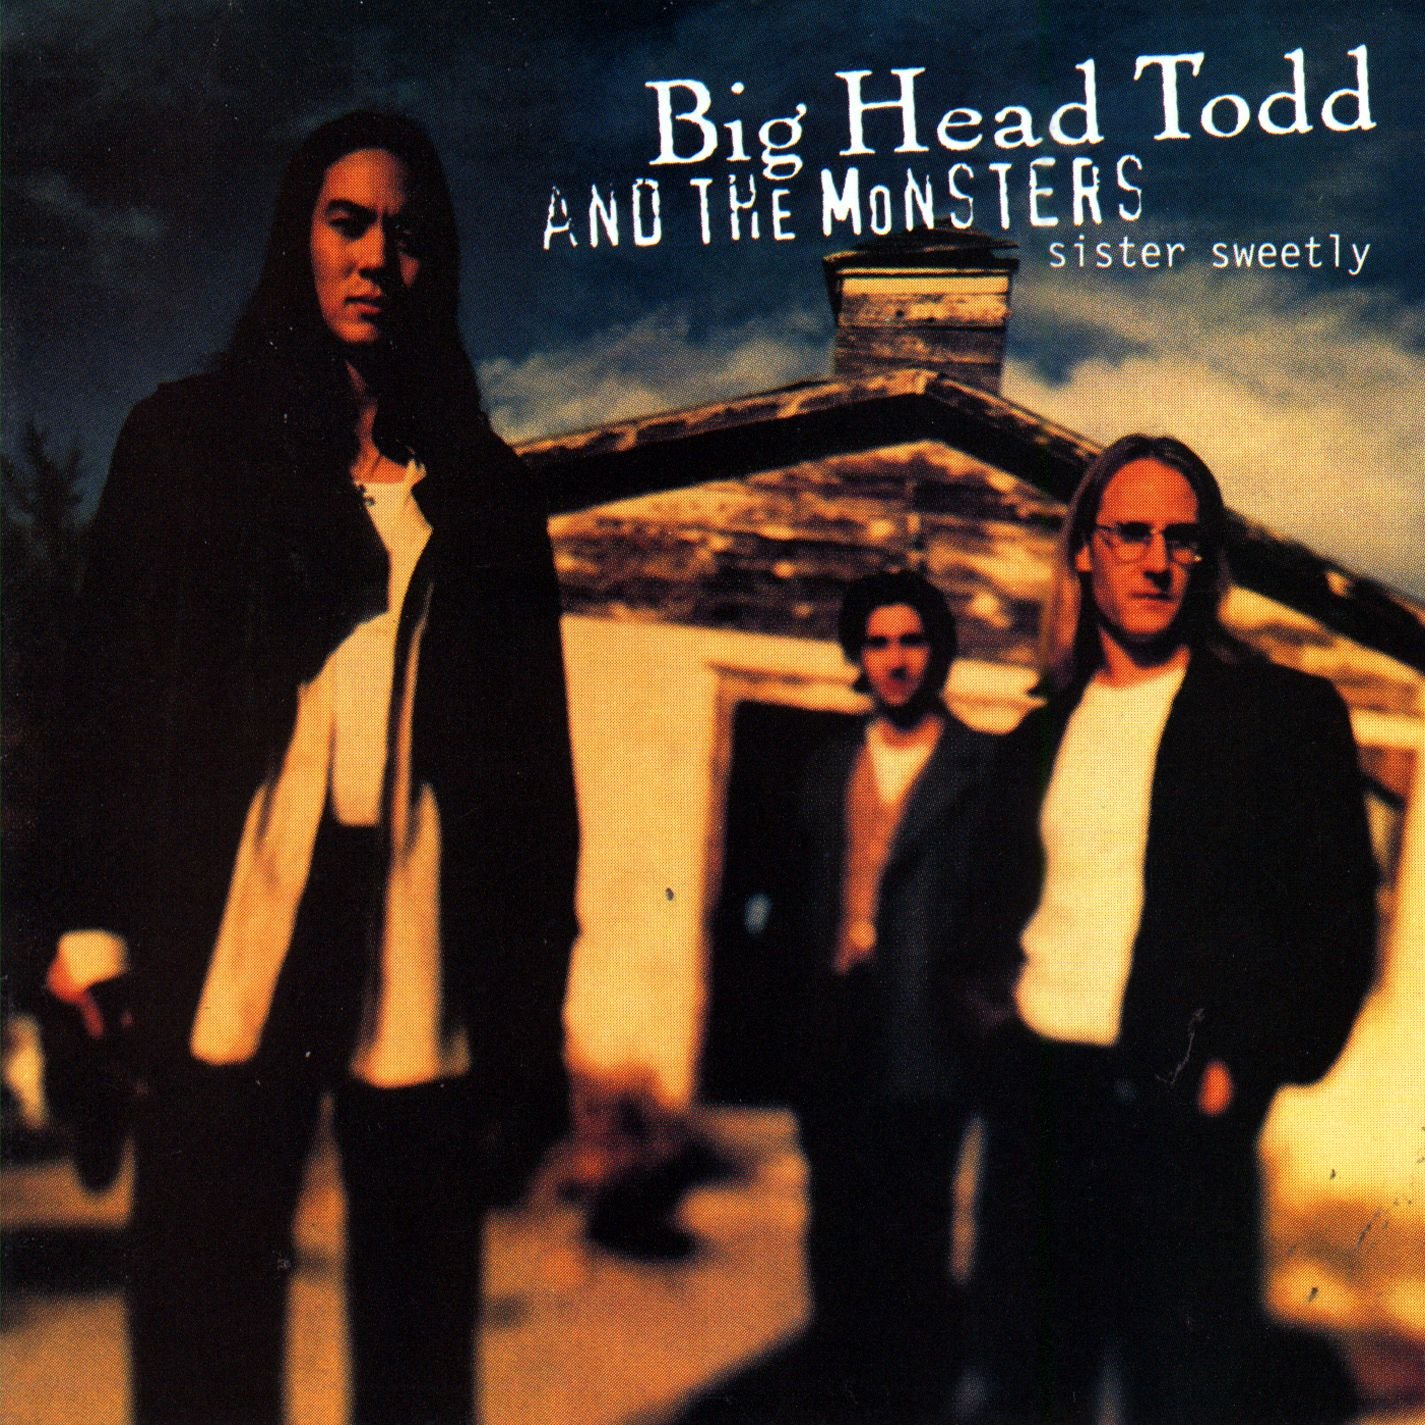 Big head Todd and the Monster album Sister Sweetly